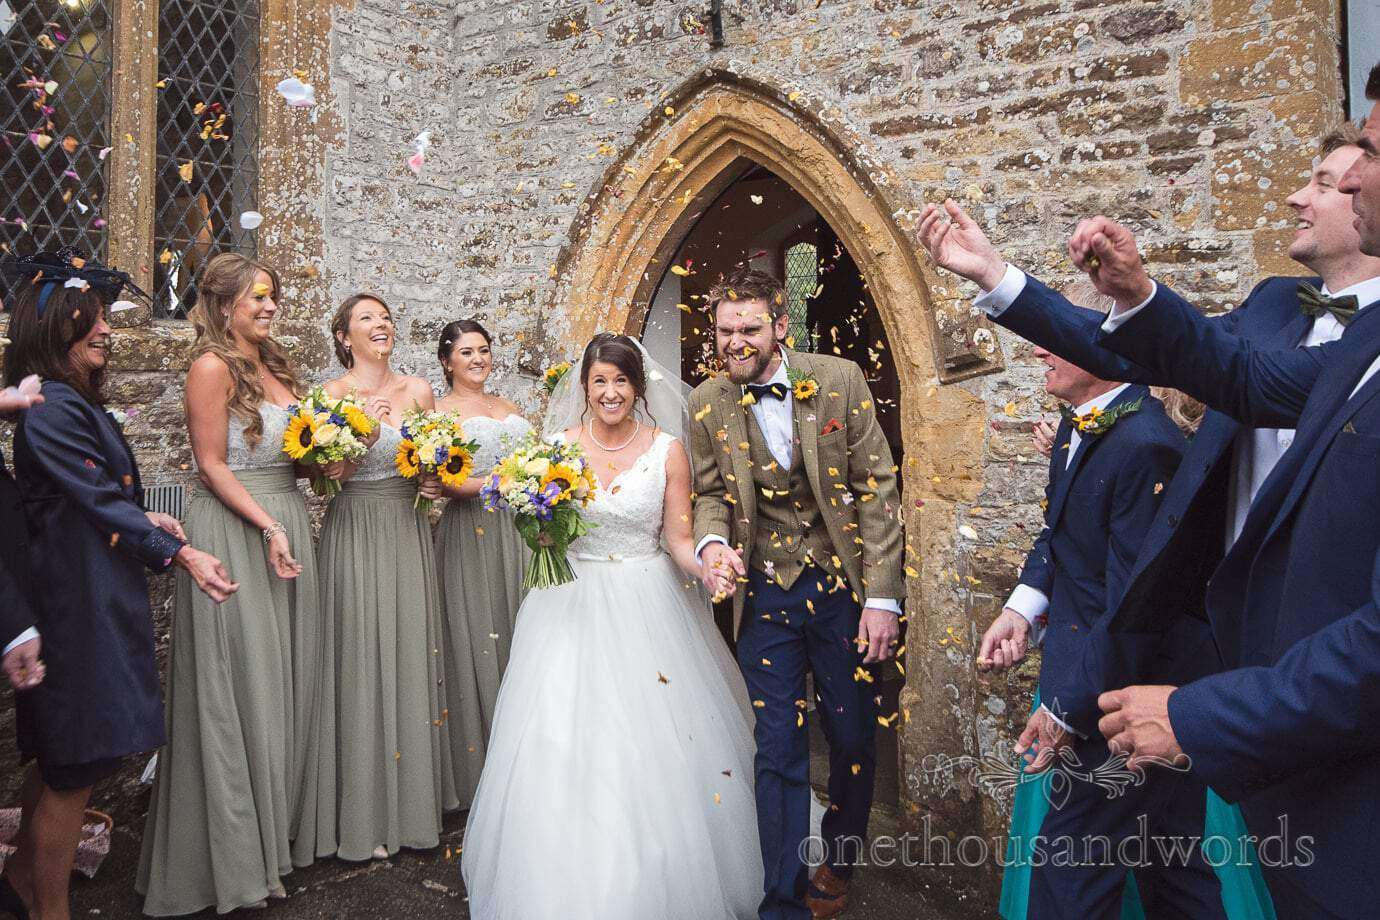 Yellow wedding confetti photograph outside Dorset stone church wedding